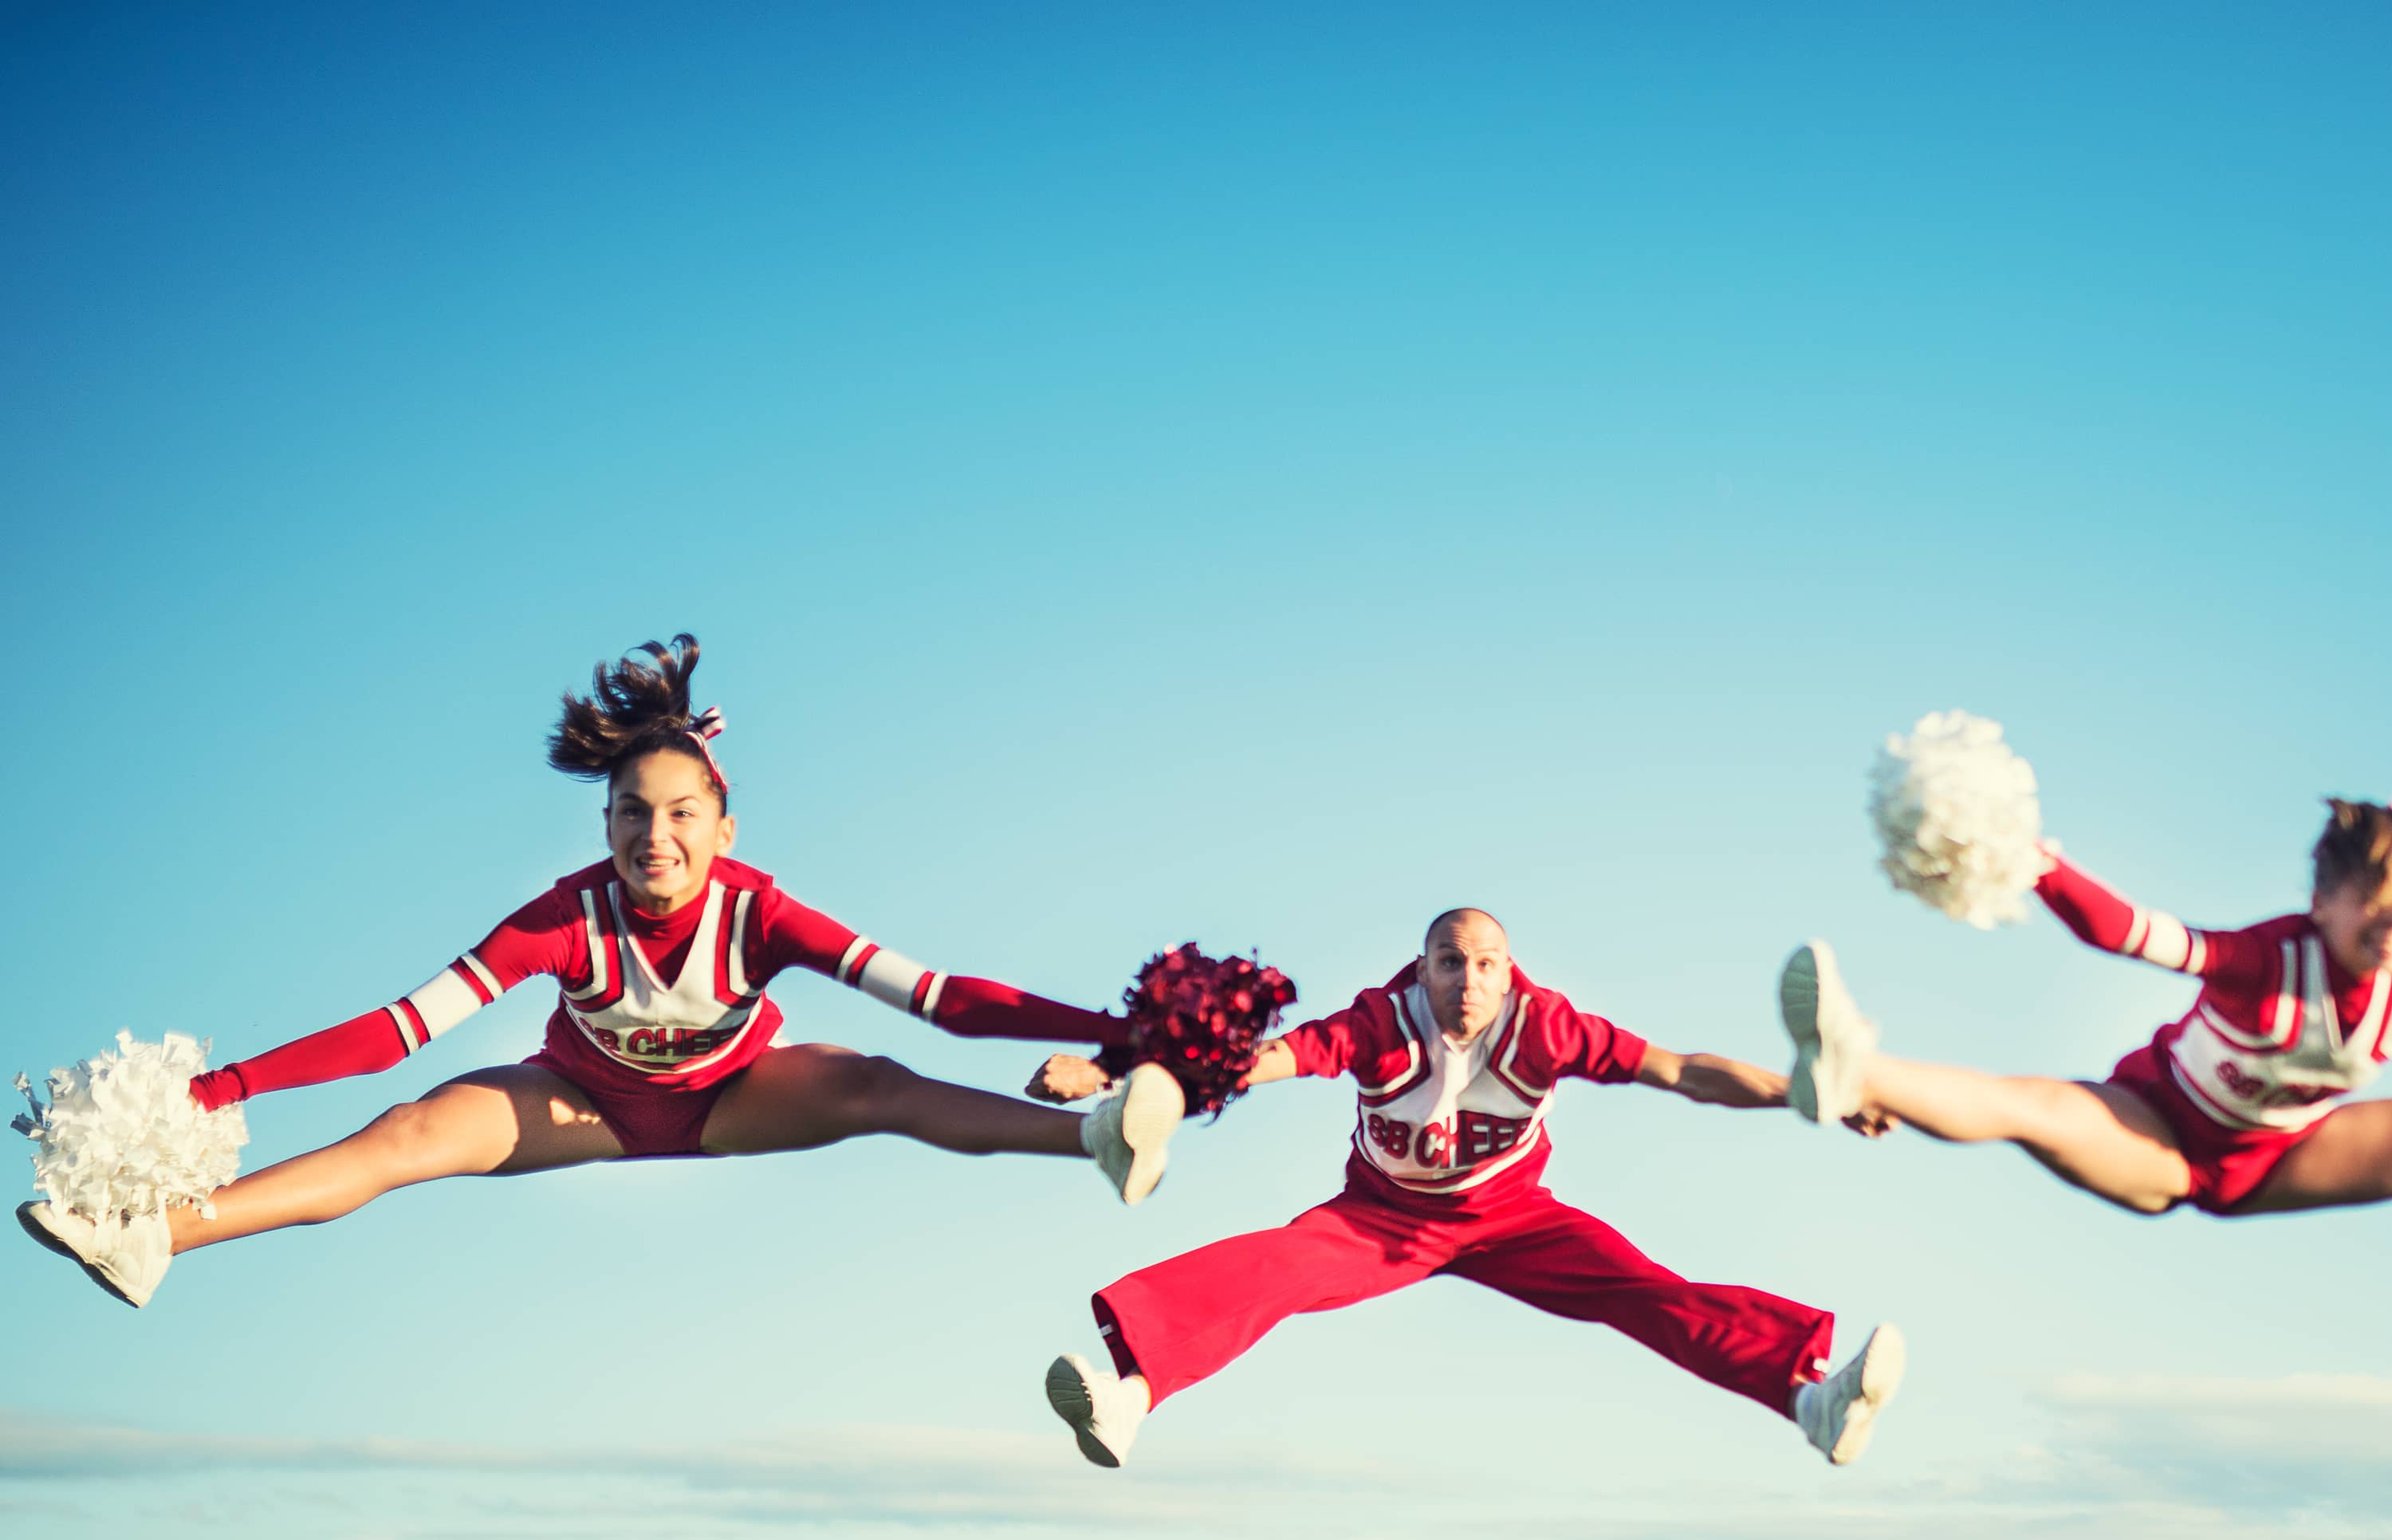 Cheerleaders jumping